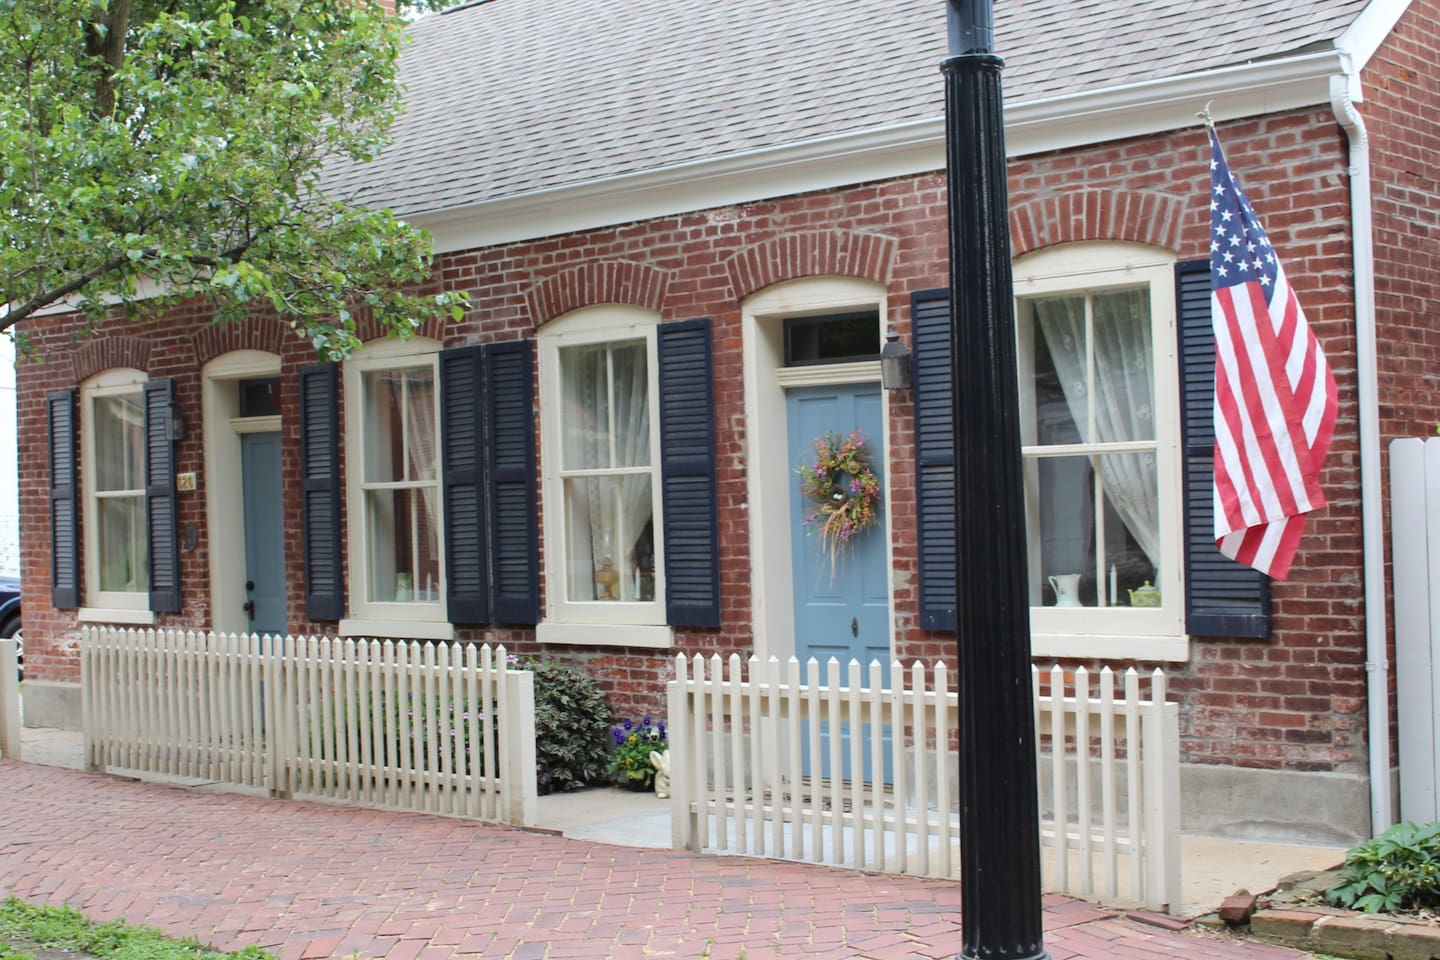 Garfield Inn - Cottage that warmly welcomes are guests